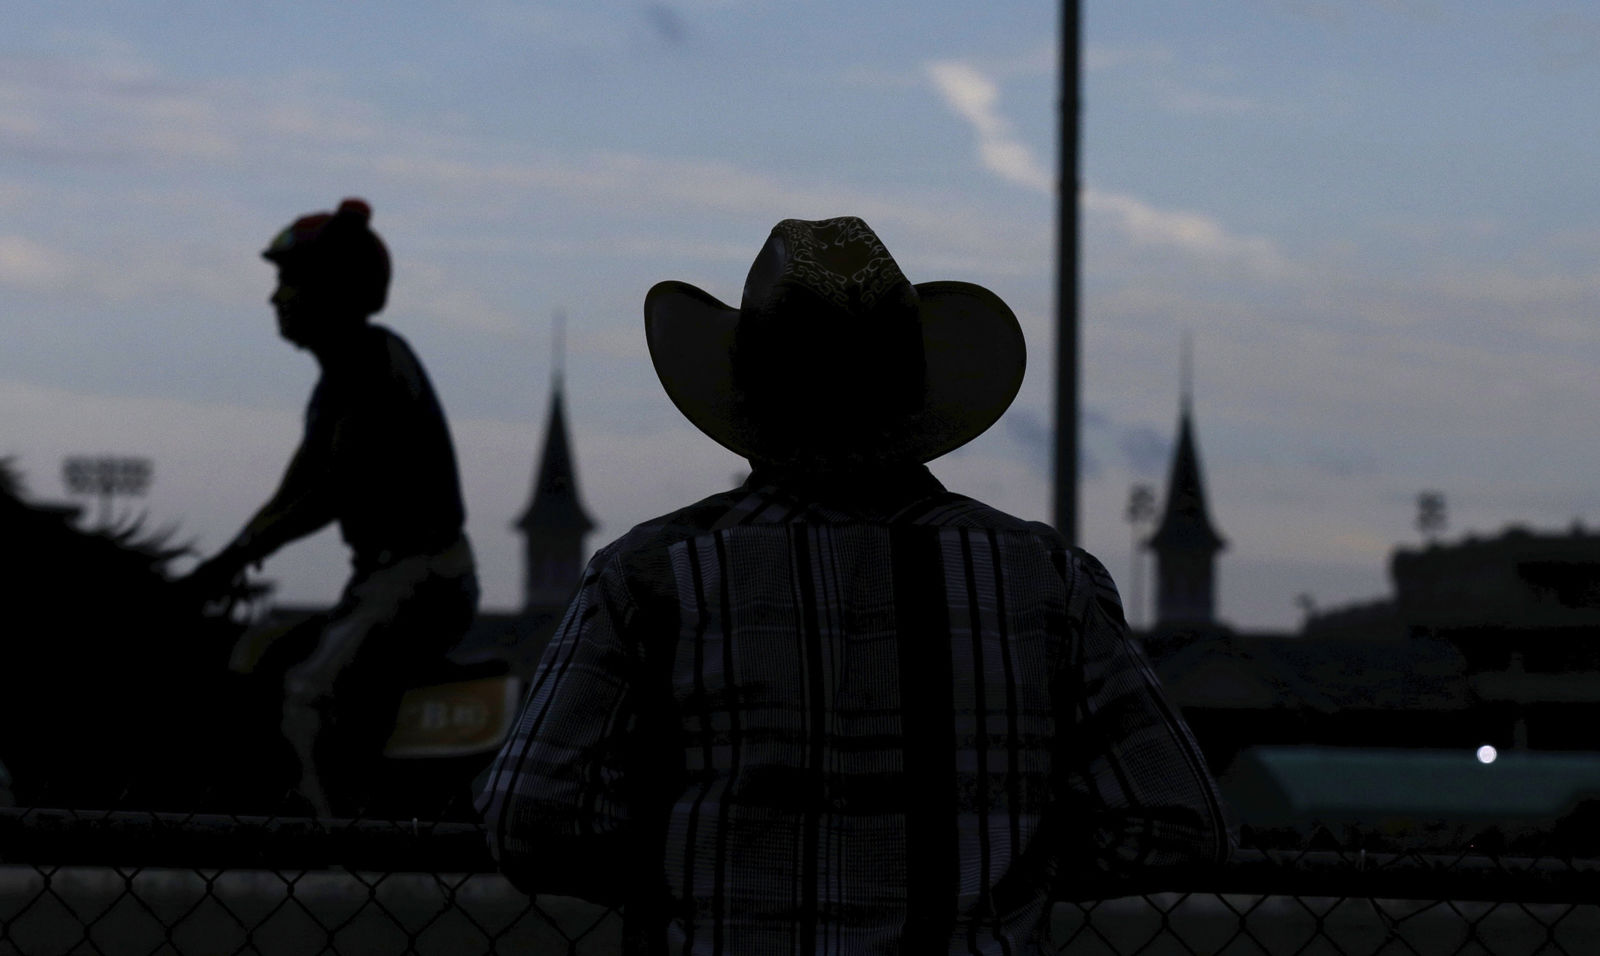 A worker watches during morning workouts at Churchill Downs Friday, May 4, 2018, in Louisville, Ky. The 144th running of the Kentucky Derby is Saturday, May 5th. (AP Photo/Kiichiro Sato)